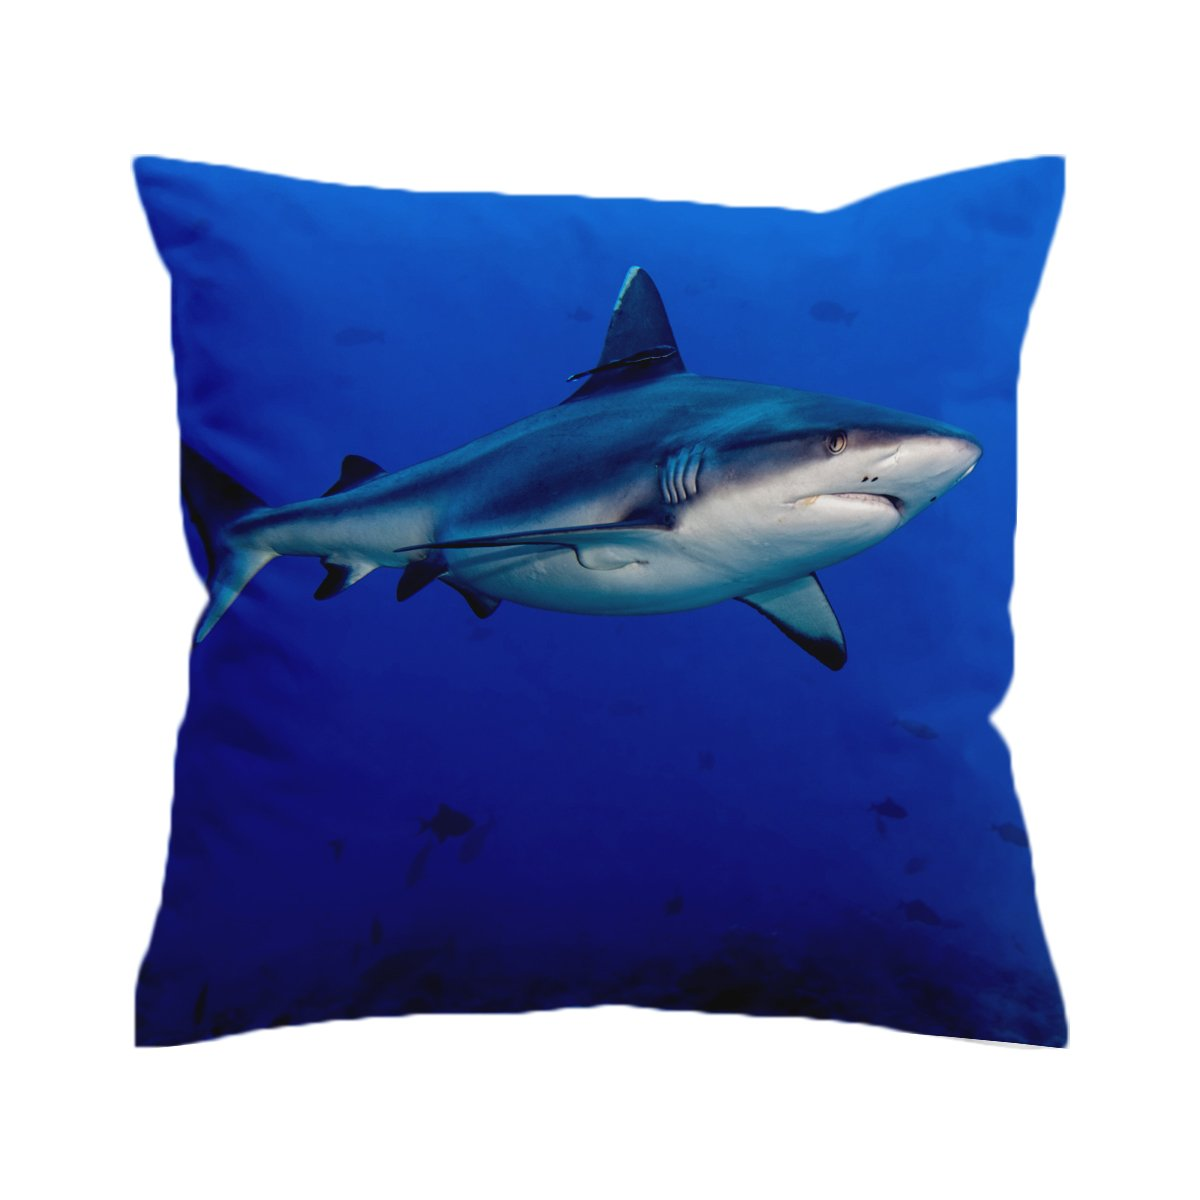 Shark Pillow Cover